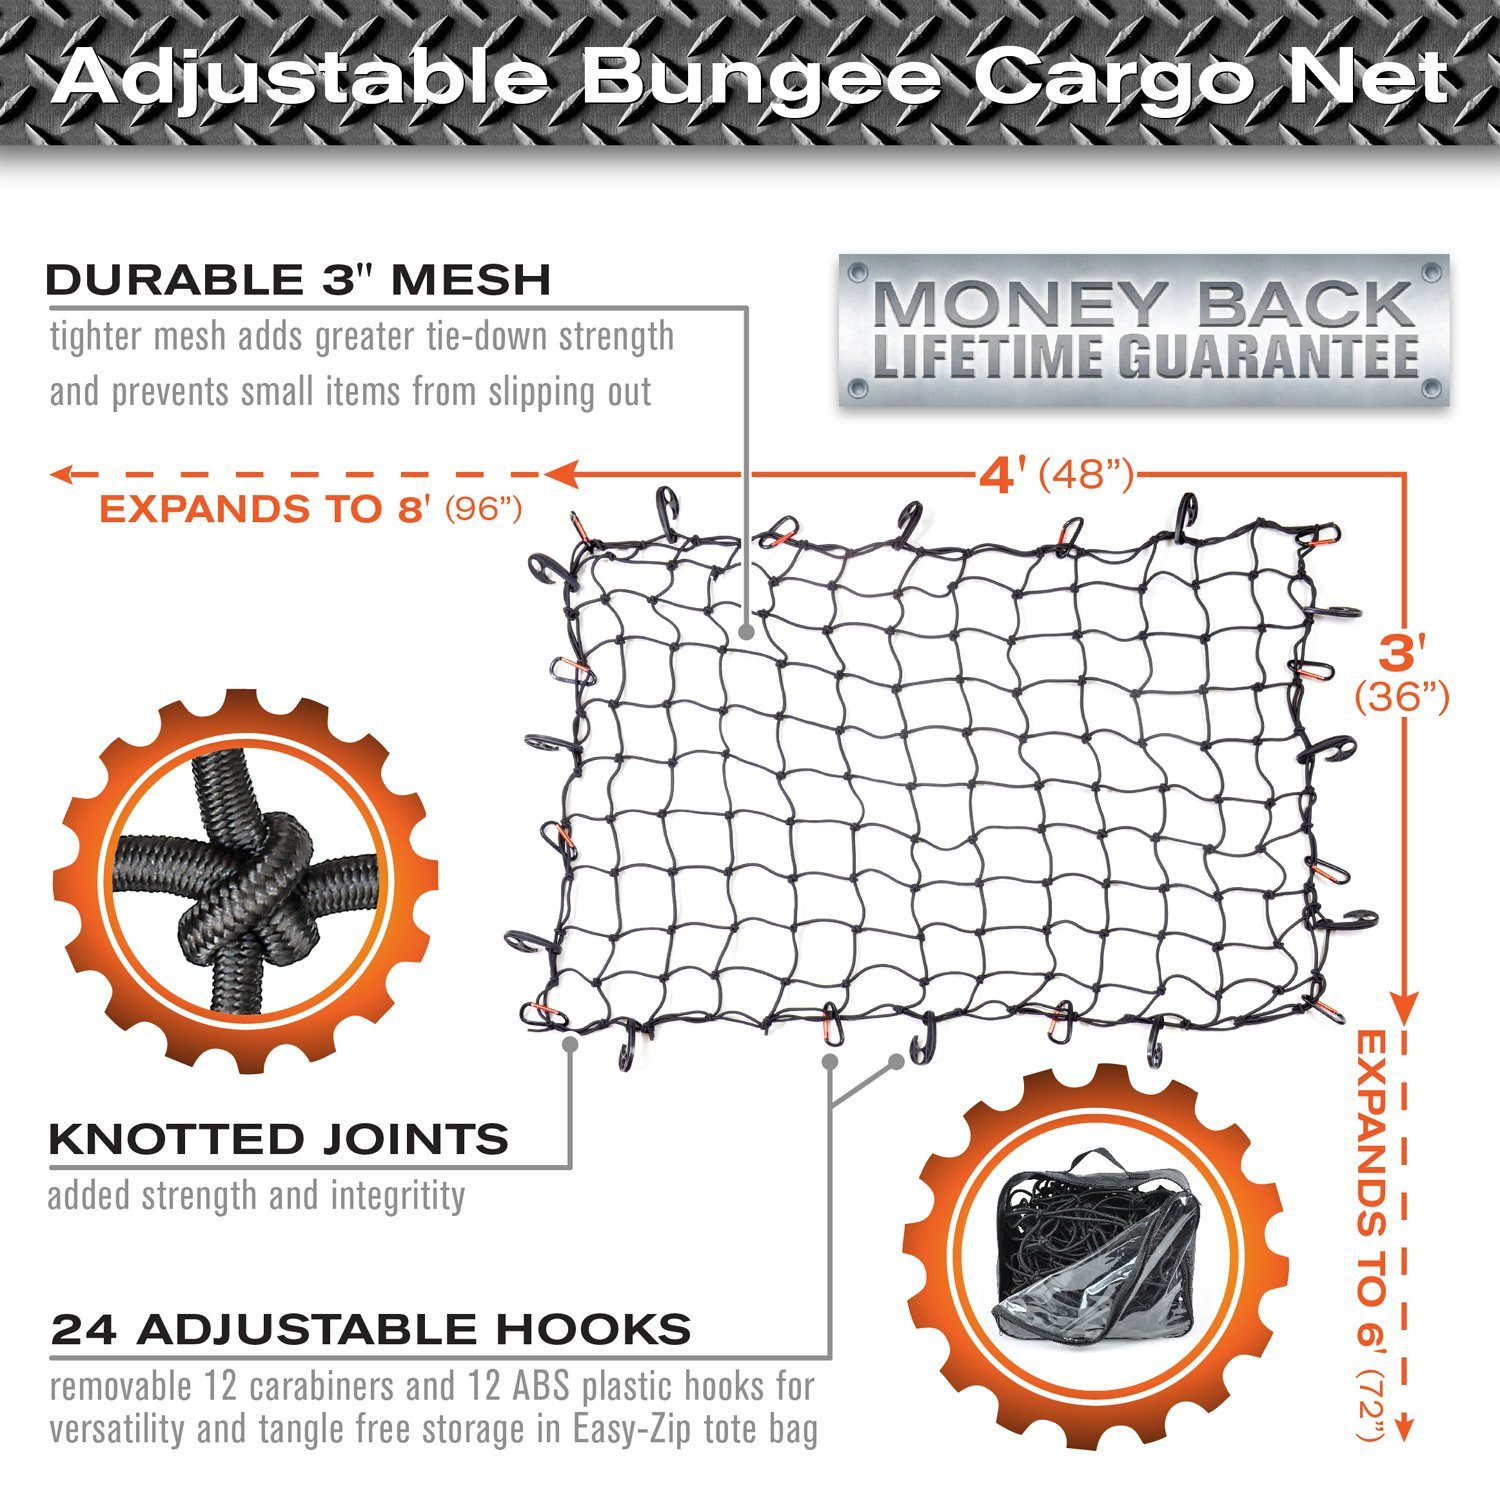 12 ABS Hooks 3x4 Super Duty Bungee Cargo Net Stretches to 6x8 for Oversized Rooftop Cargo Rack /& Small Trucks Narrow 3x3 Grid Holds Small /& Large Loads Tighter 12 Tangle-free 3 Carabiners